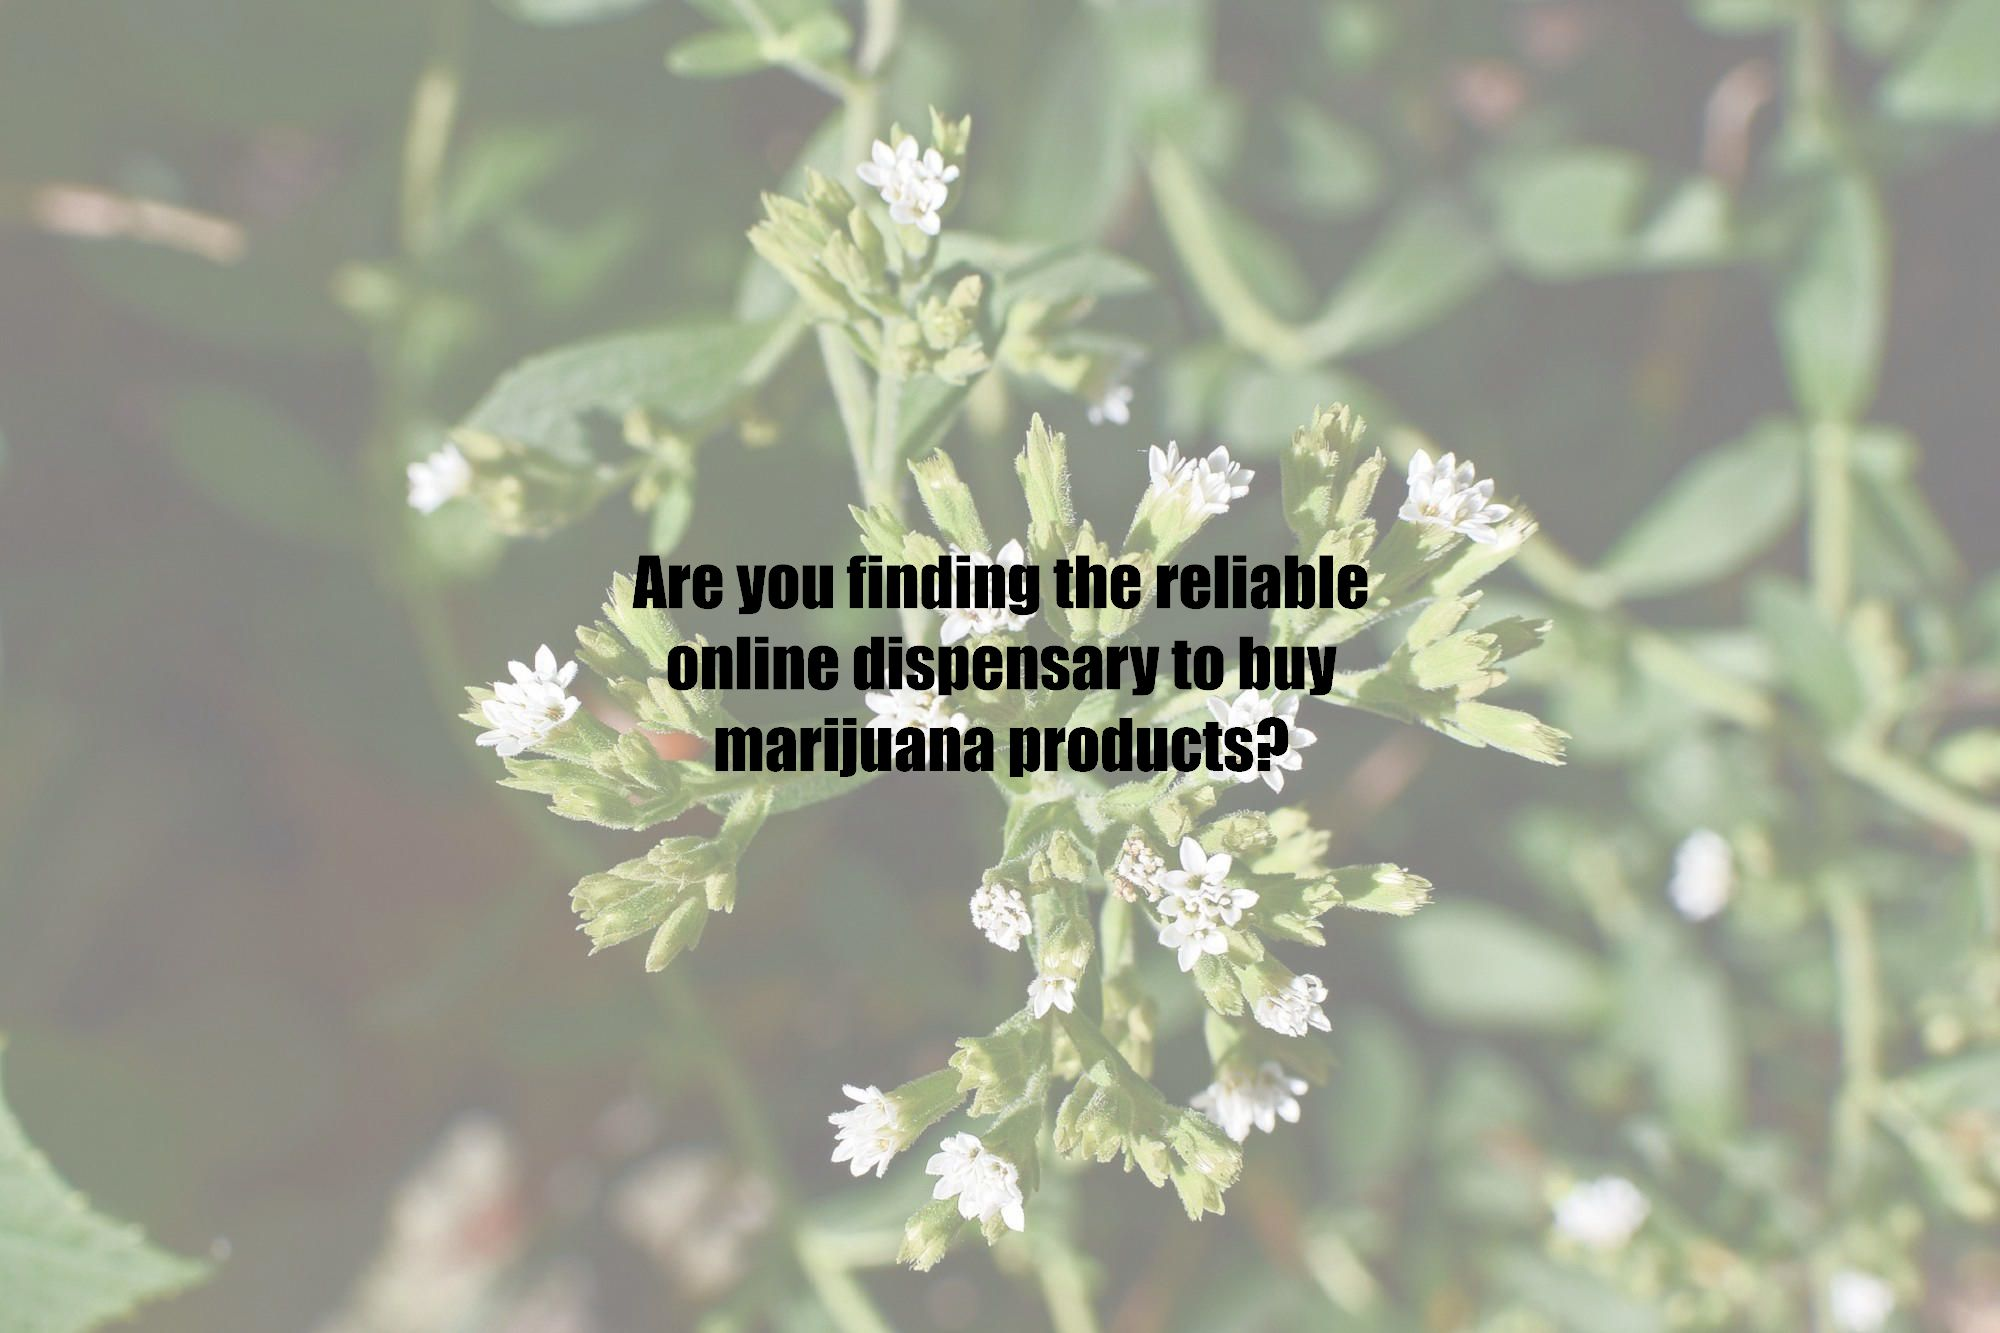 Are you finding the reliable online dispensary to buy marijuana products?